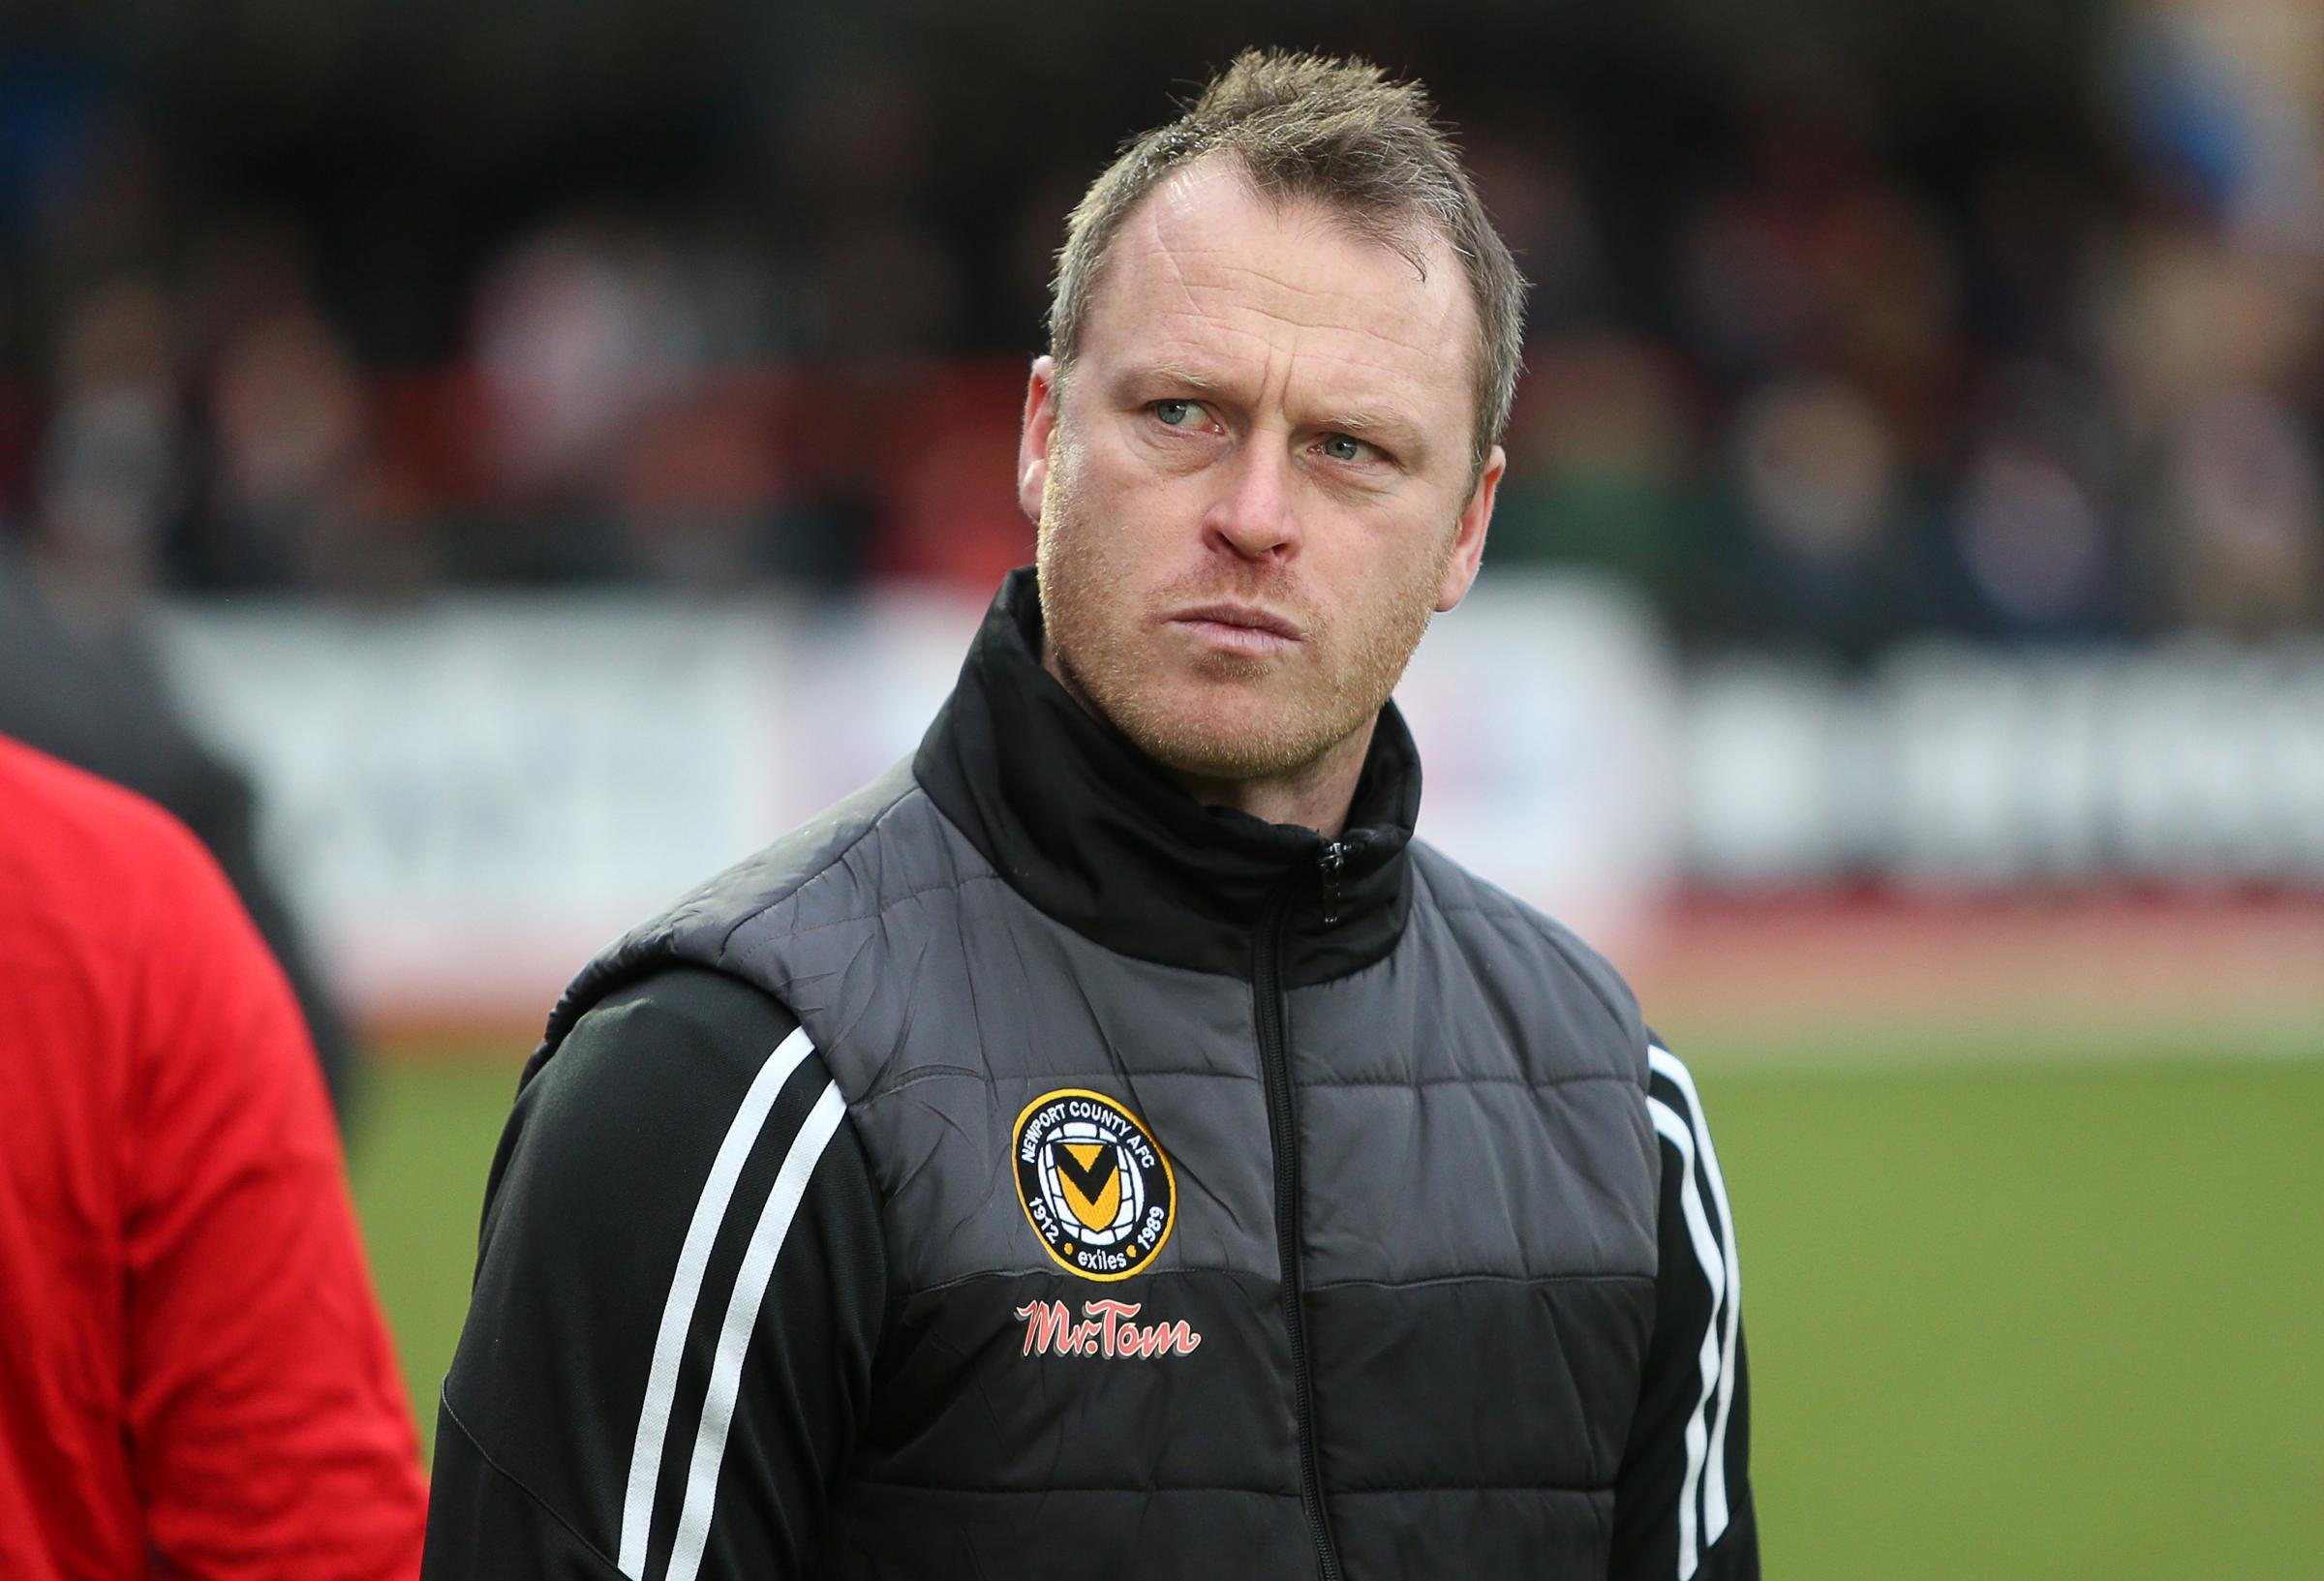 BUSY: Newport County manager Michael Flynn. Pictures: Huw Evans Agency